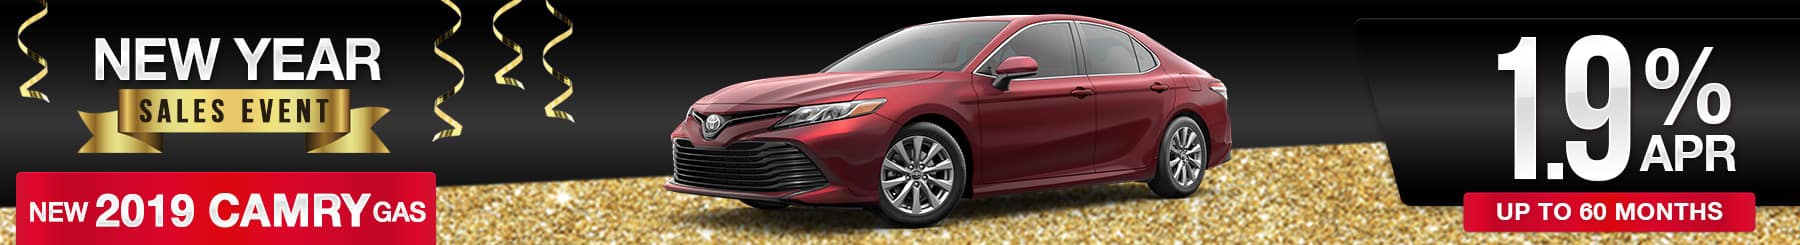 Toyota-Camry Finance Special